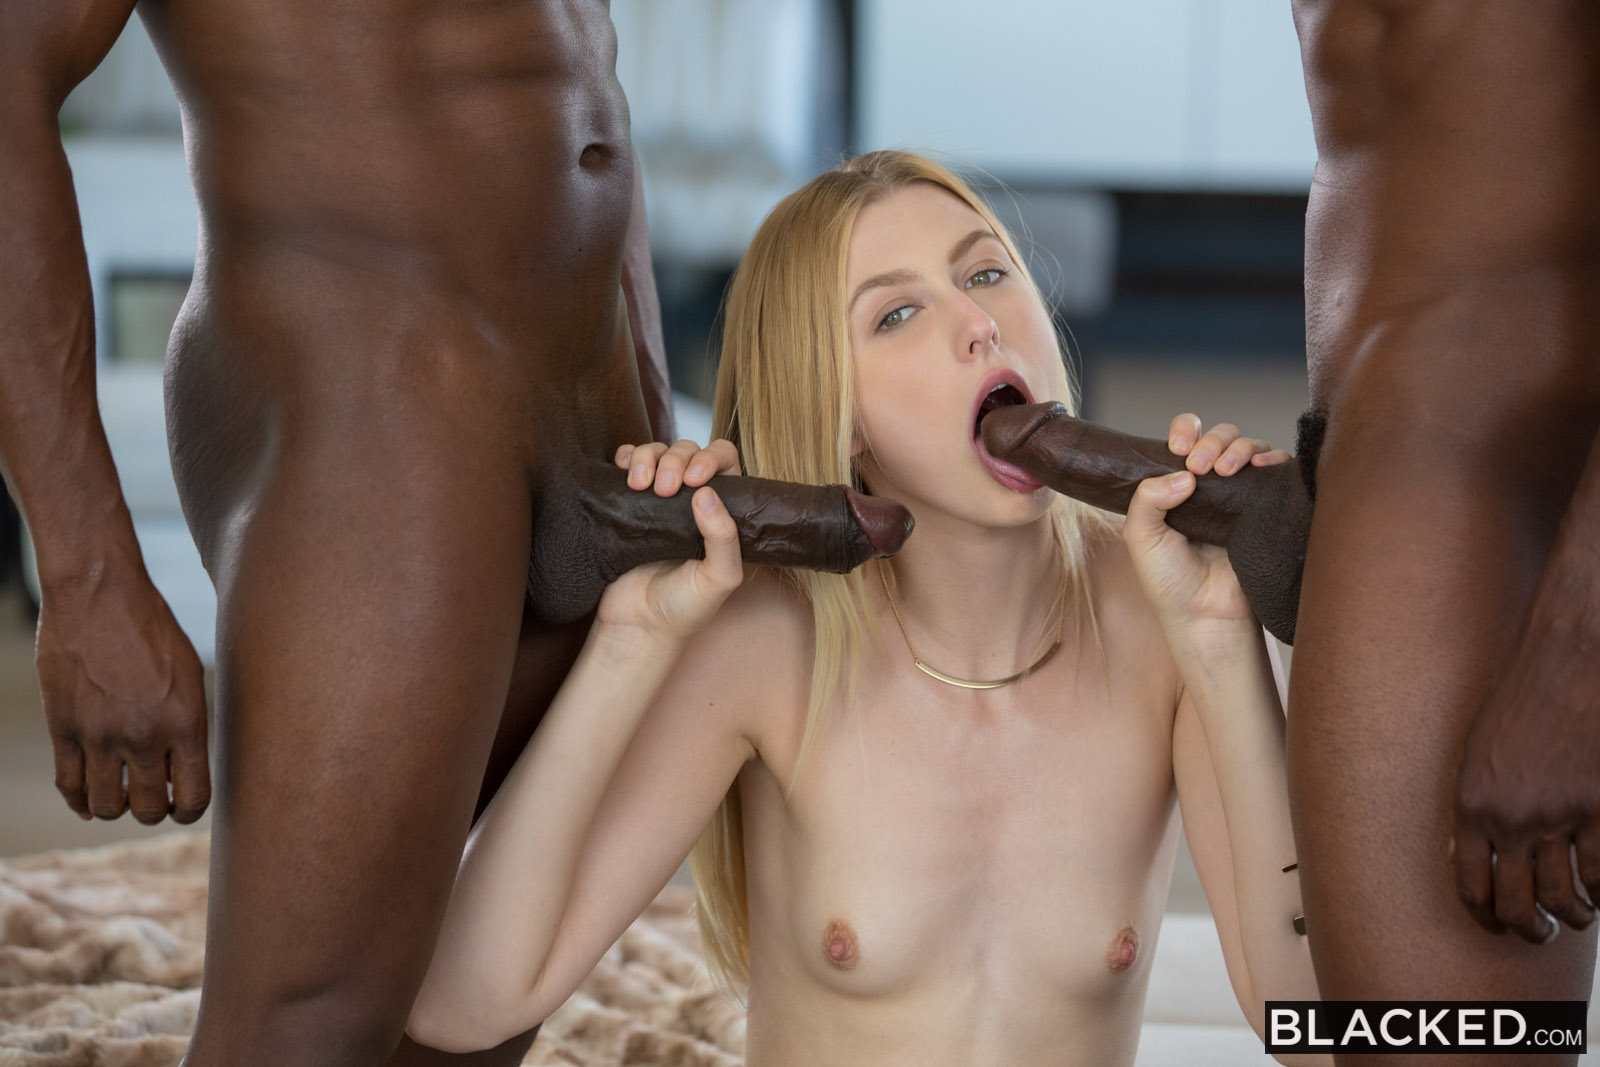 Blacked anal threesome xxx